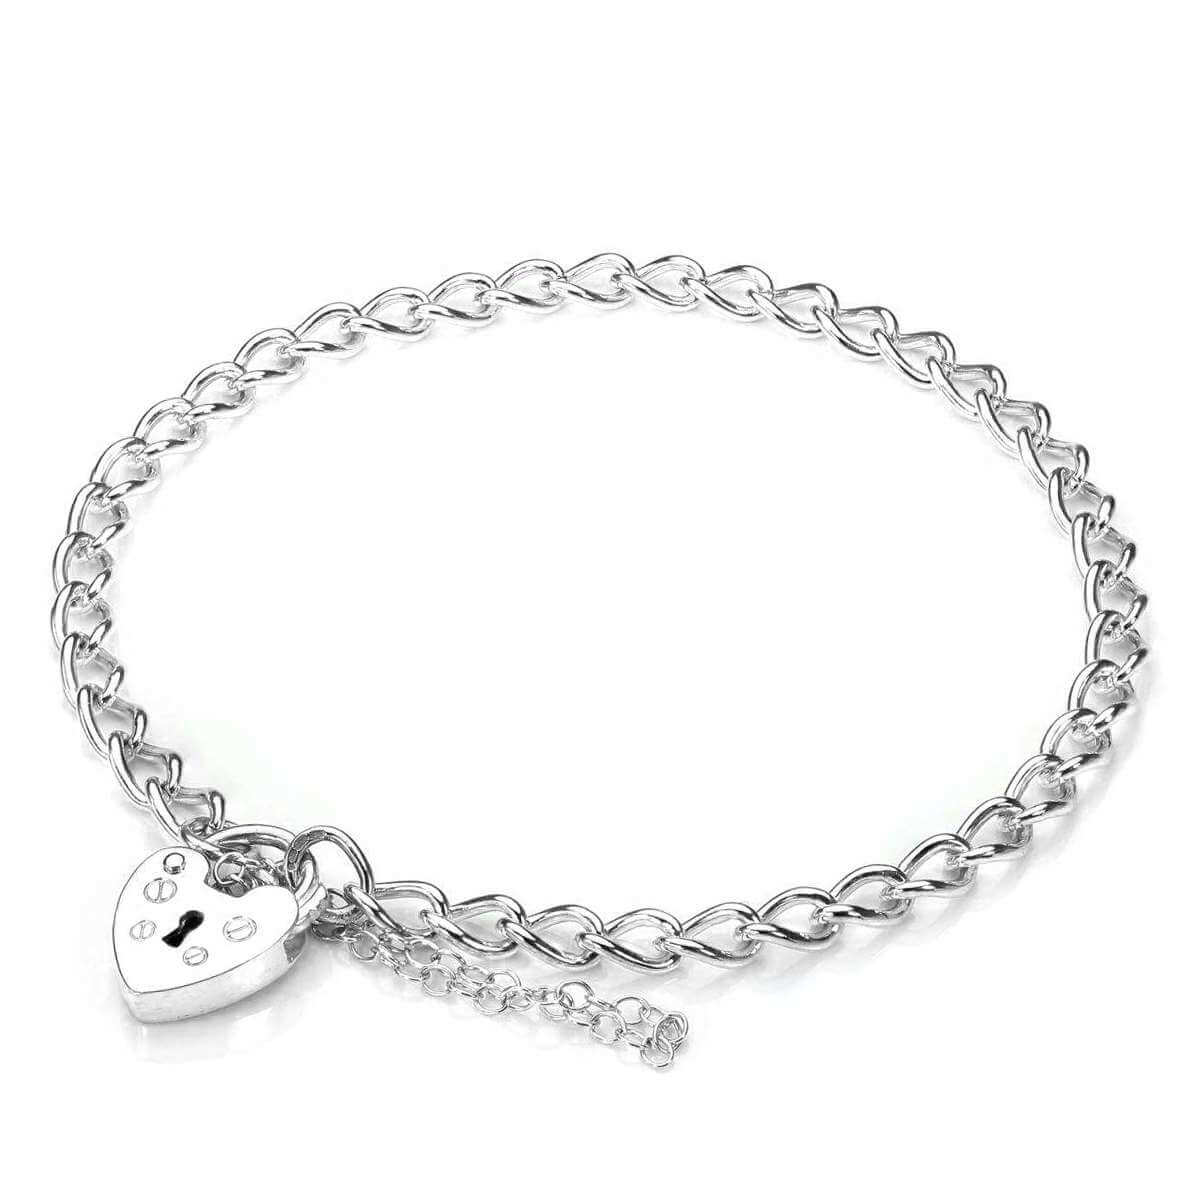 9ct White Gold Heart Padlock Charm Bracelet